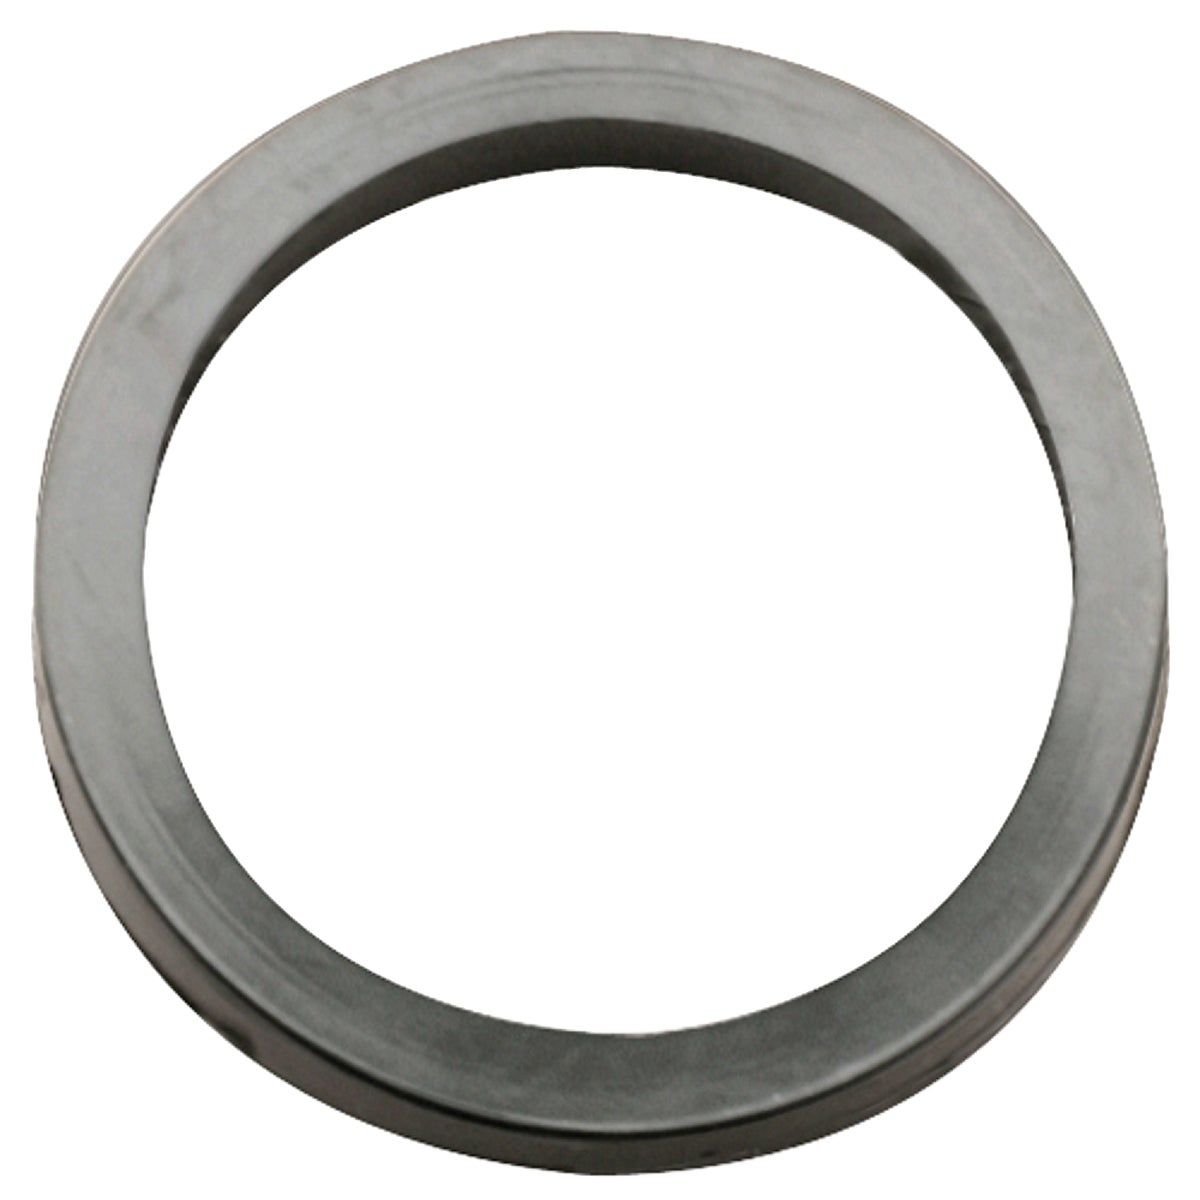 "100PK 1-1/4"" S/J WASHERS - 409267 by Plumb Pak/keeney Mfg"